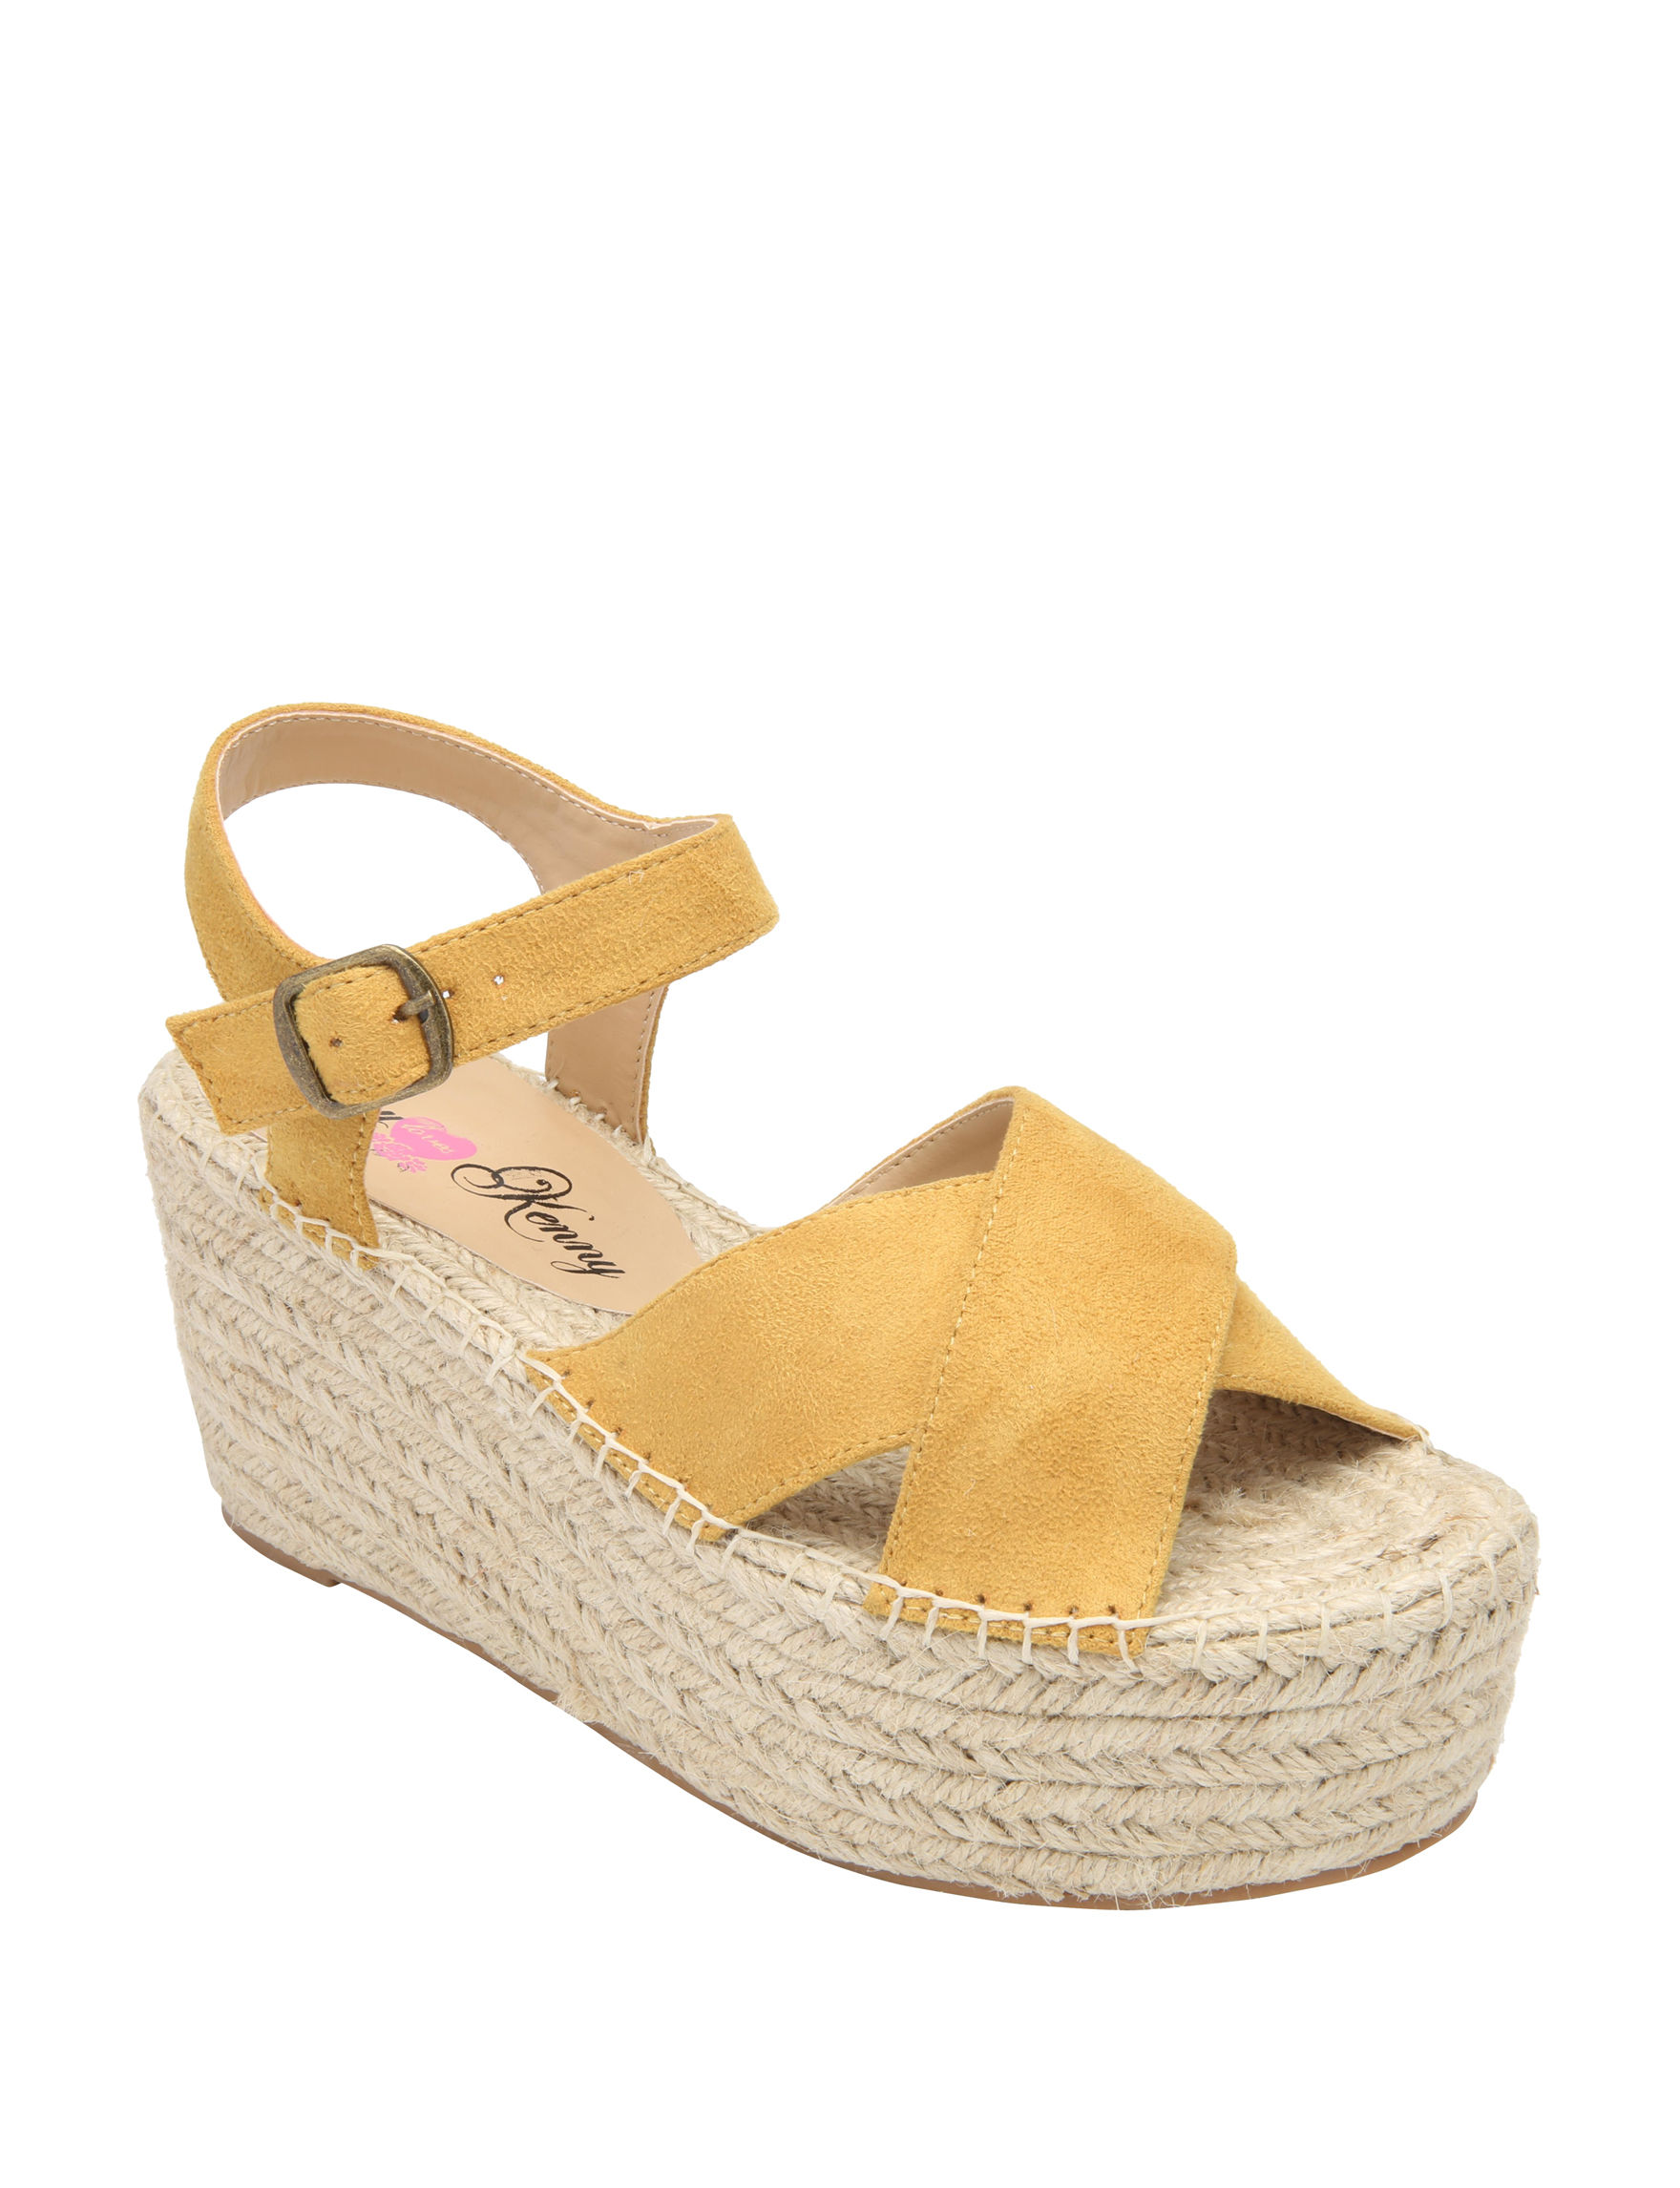 Penny Loves Kenny Tan Espadrille Wedge Sandals